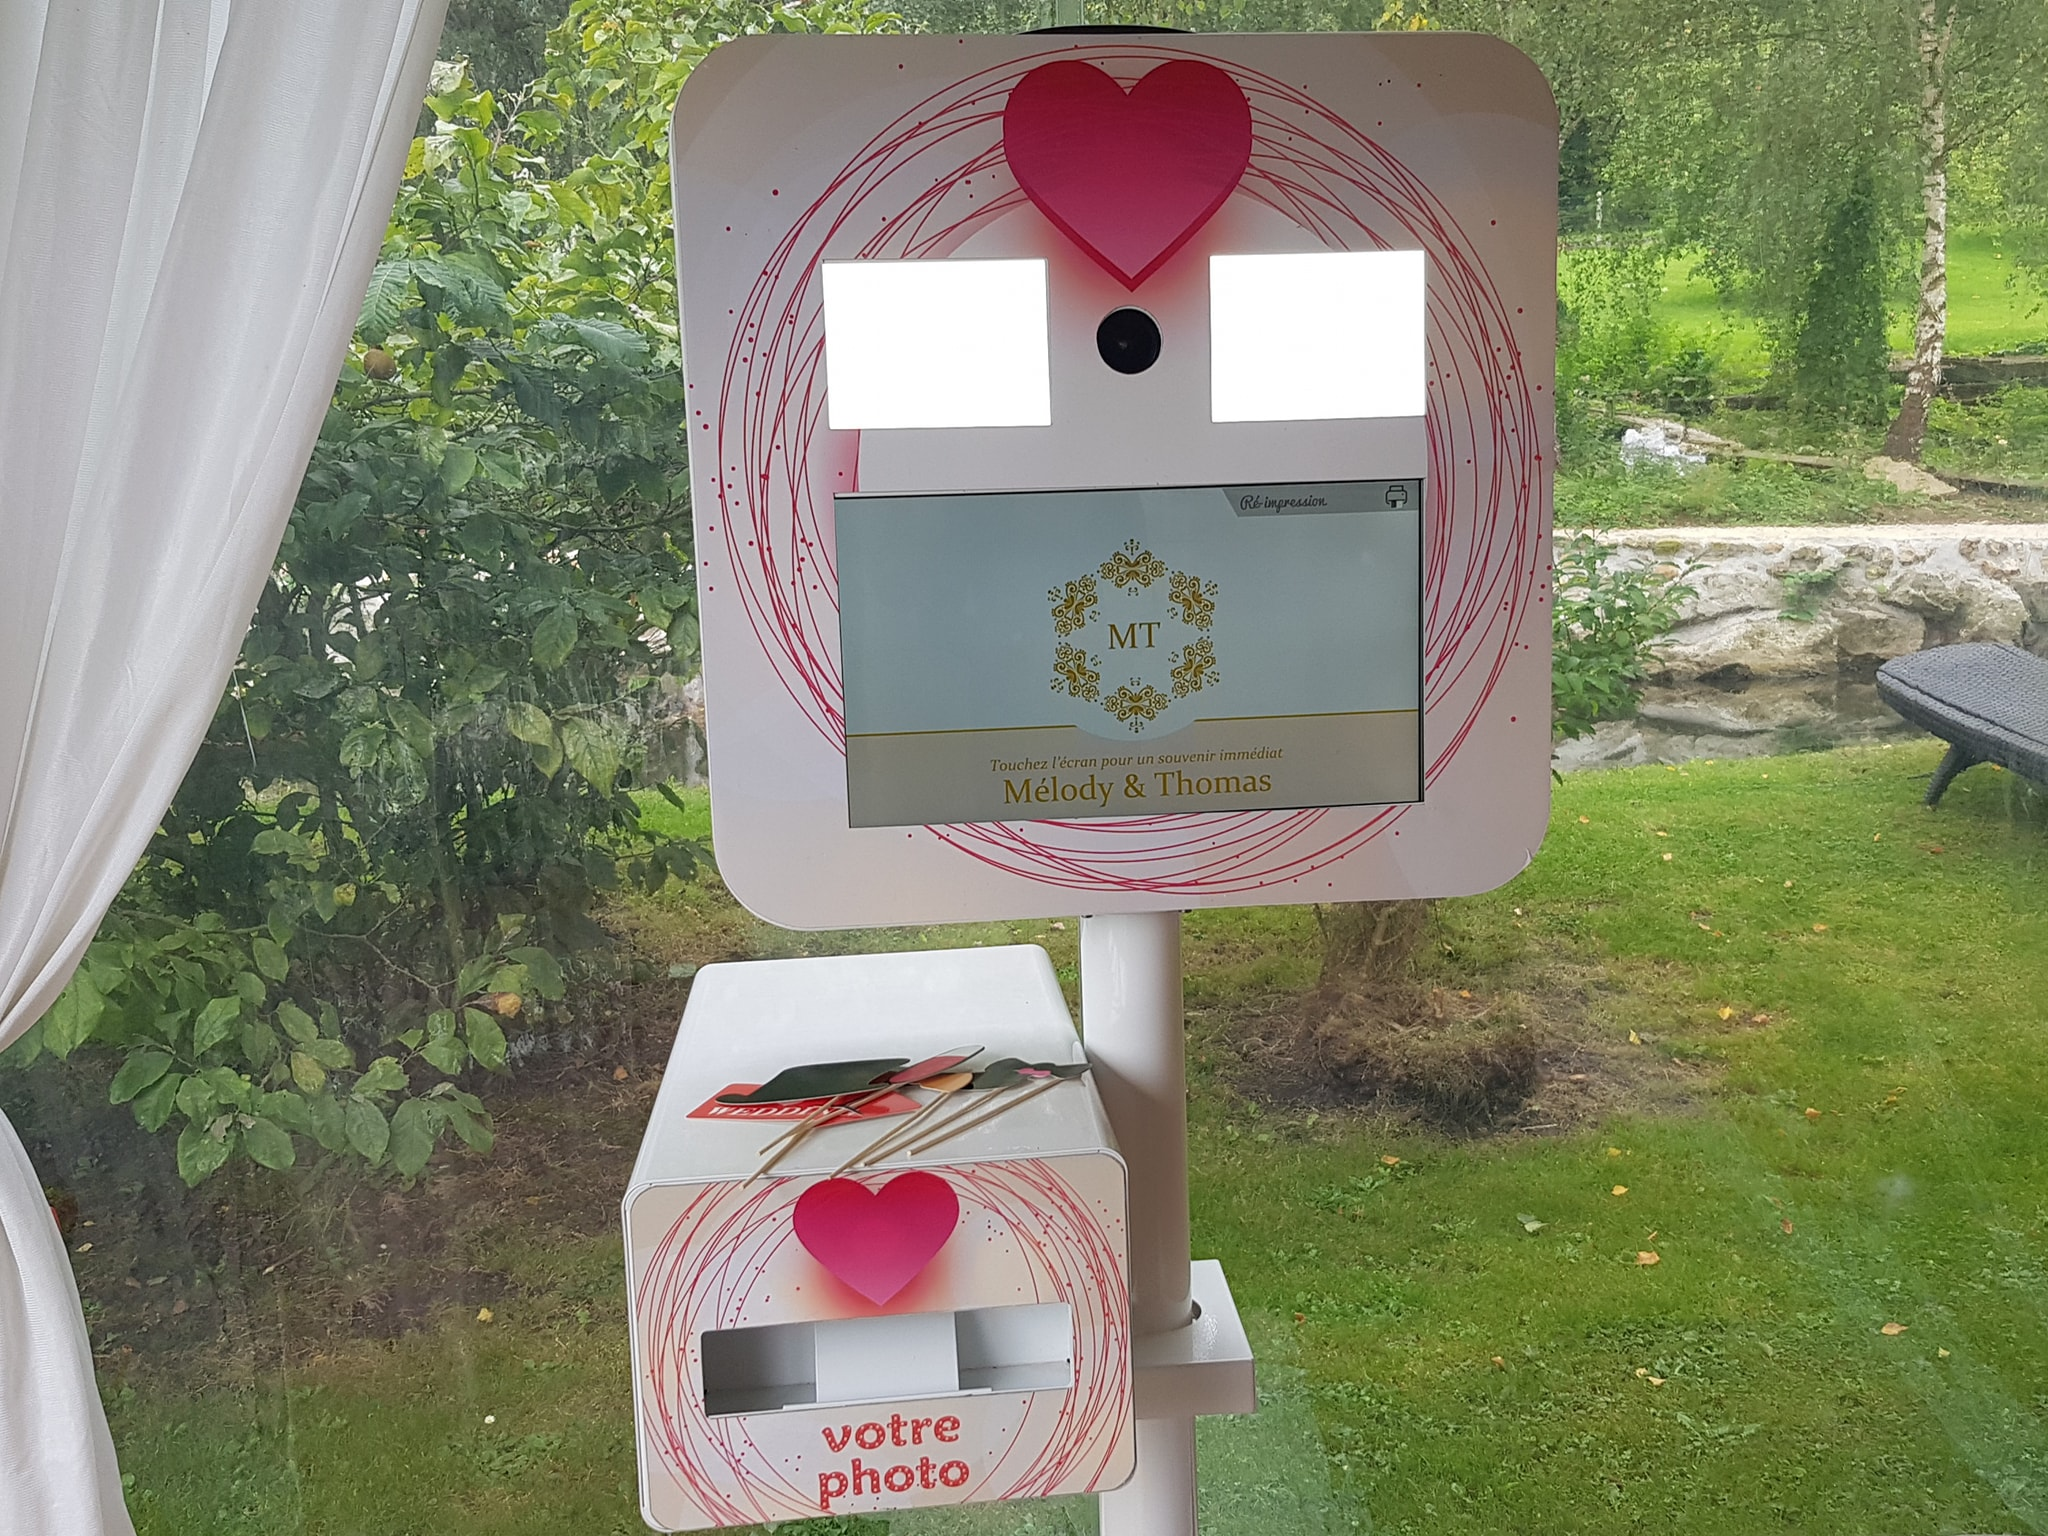 location borne à selfie mariage le moulin fouret bernay eure normandie photobooth photobox evenement mariage